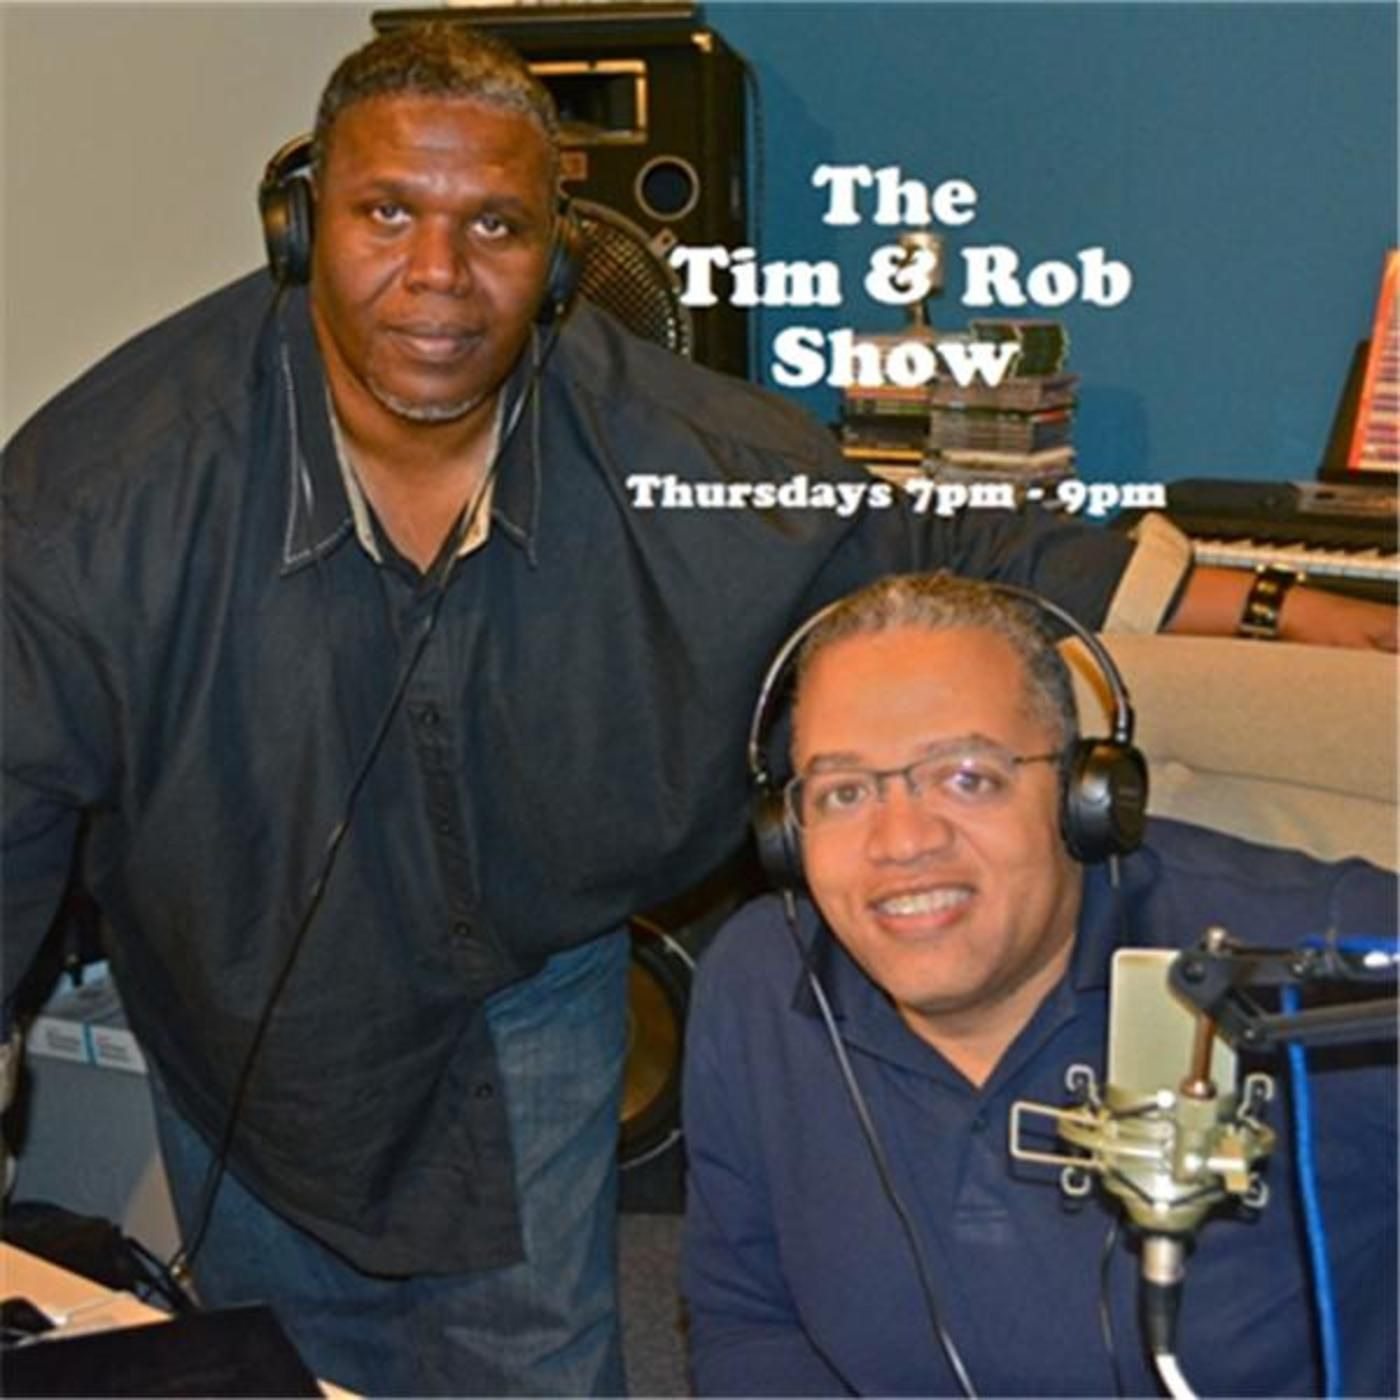 The Best of The Tim and Rob Show - Why Girls like Bad Boys